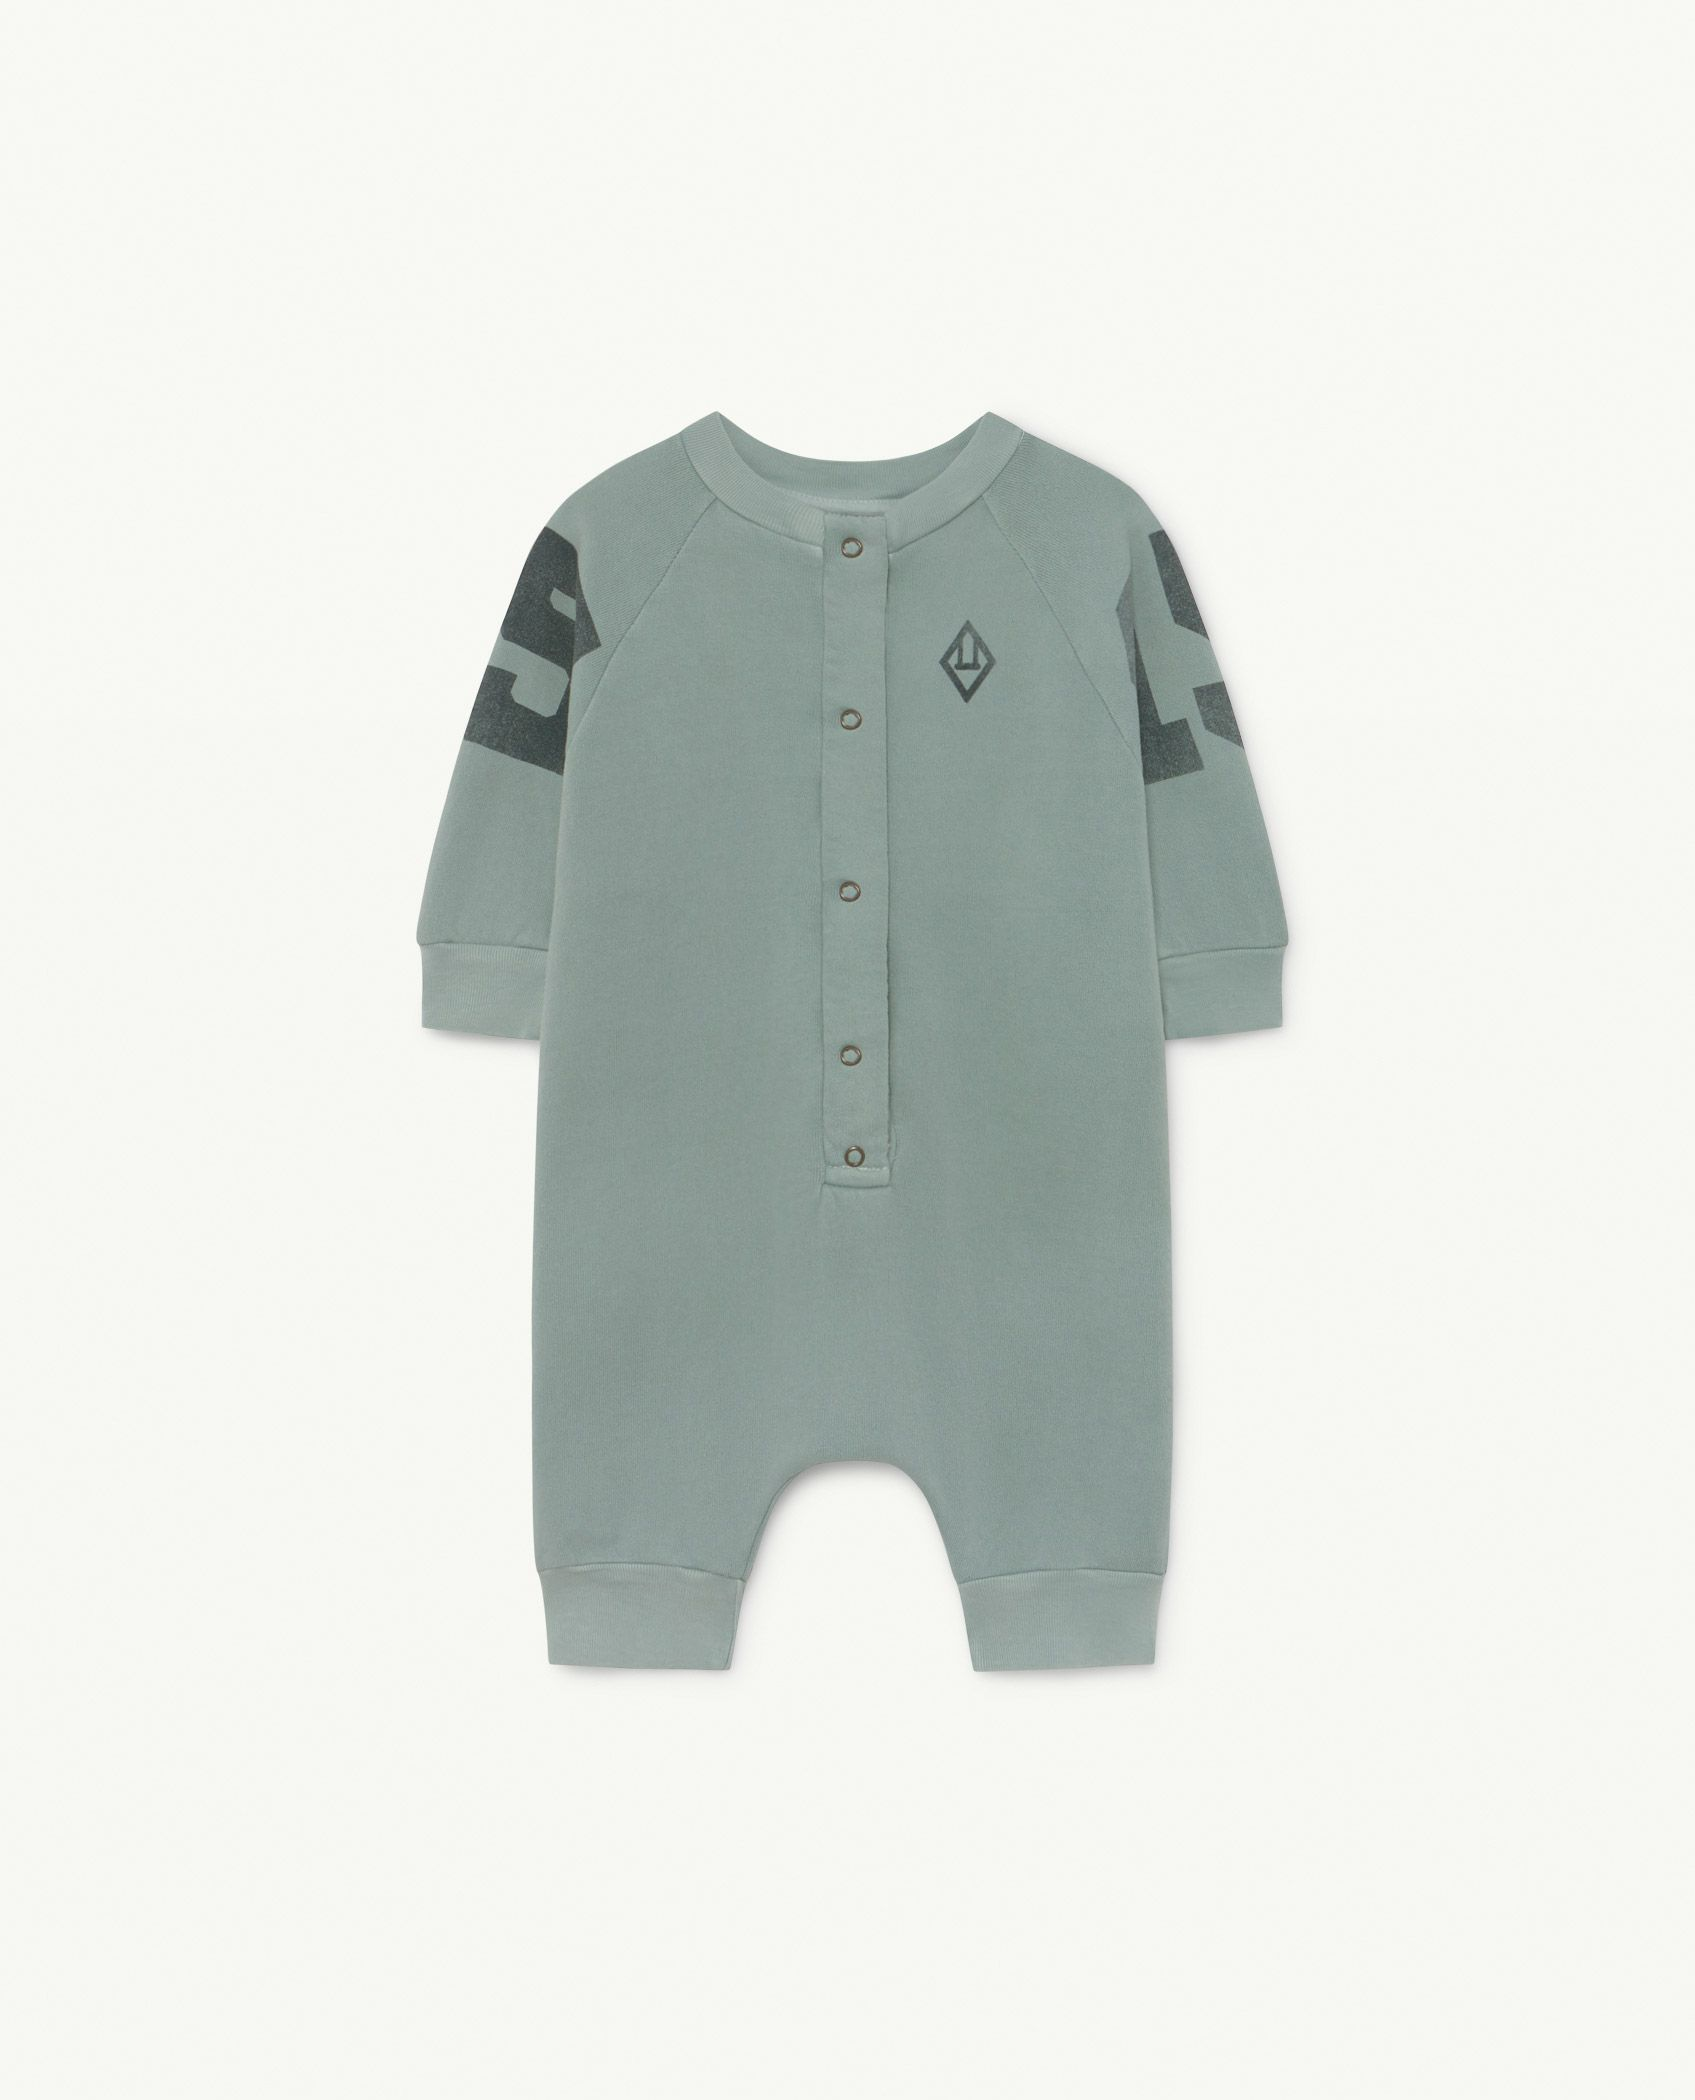 Baby Blue 15 Sheep Suit img-1